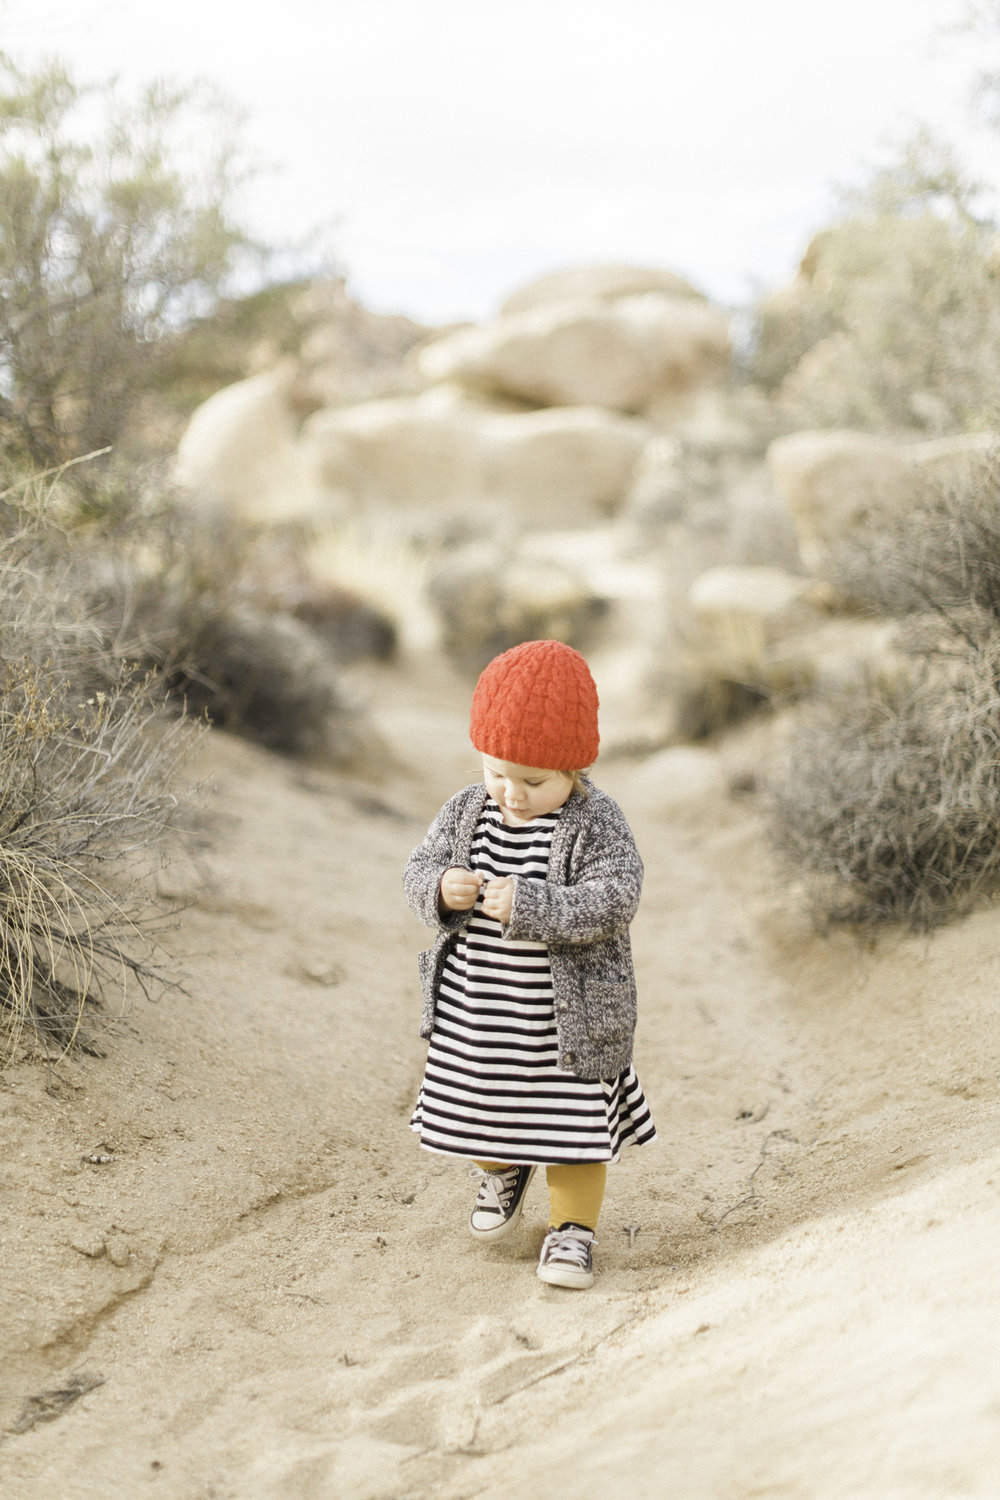 Joshua-Tree-calgary-kids-photography-shop-the-skinny-22.jpg